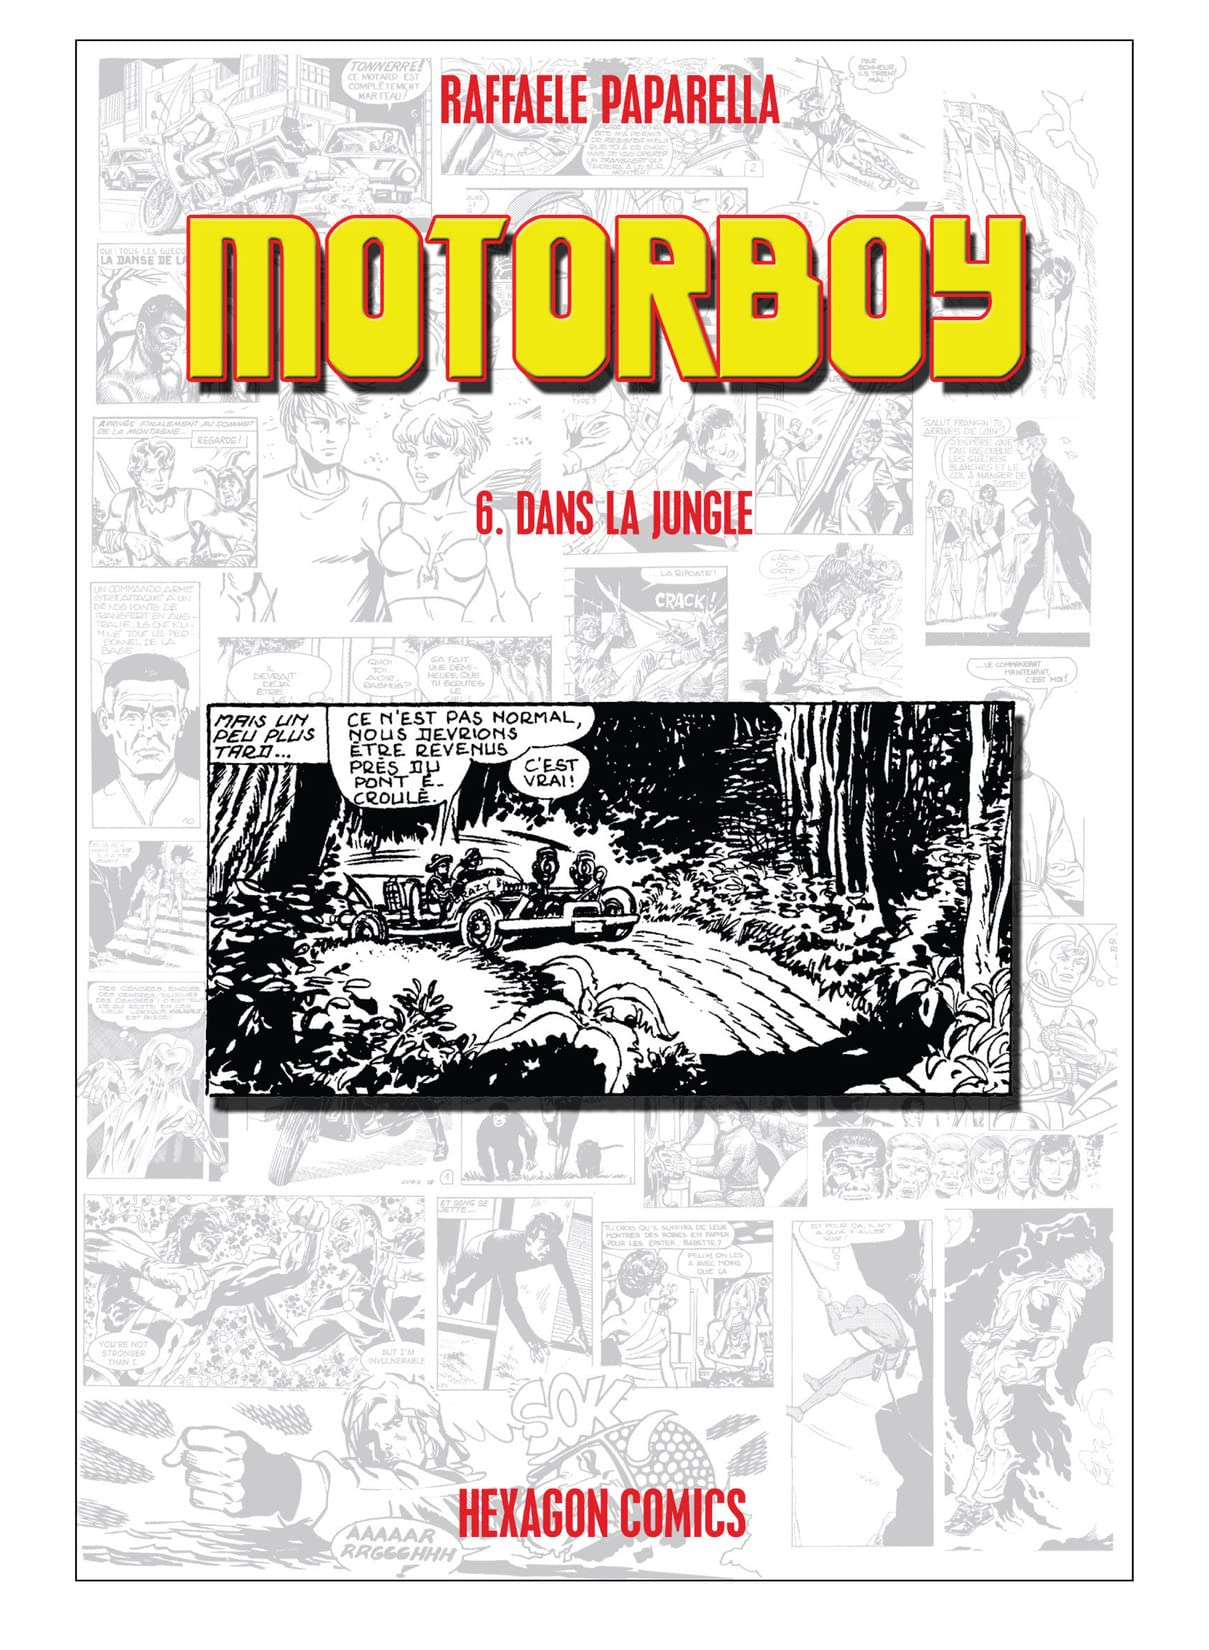 Motorboy #6: Dans la Jungle